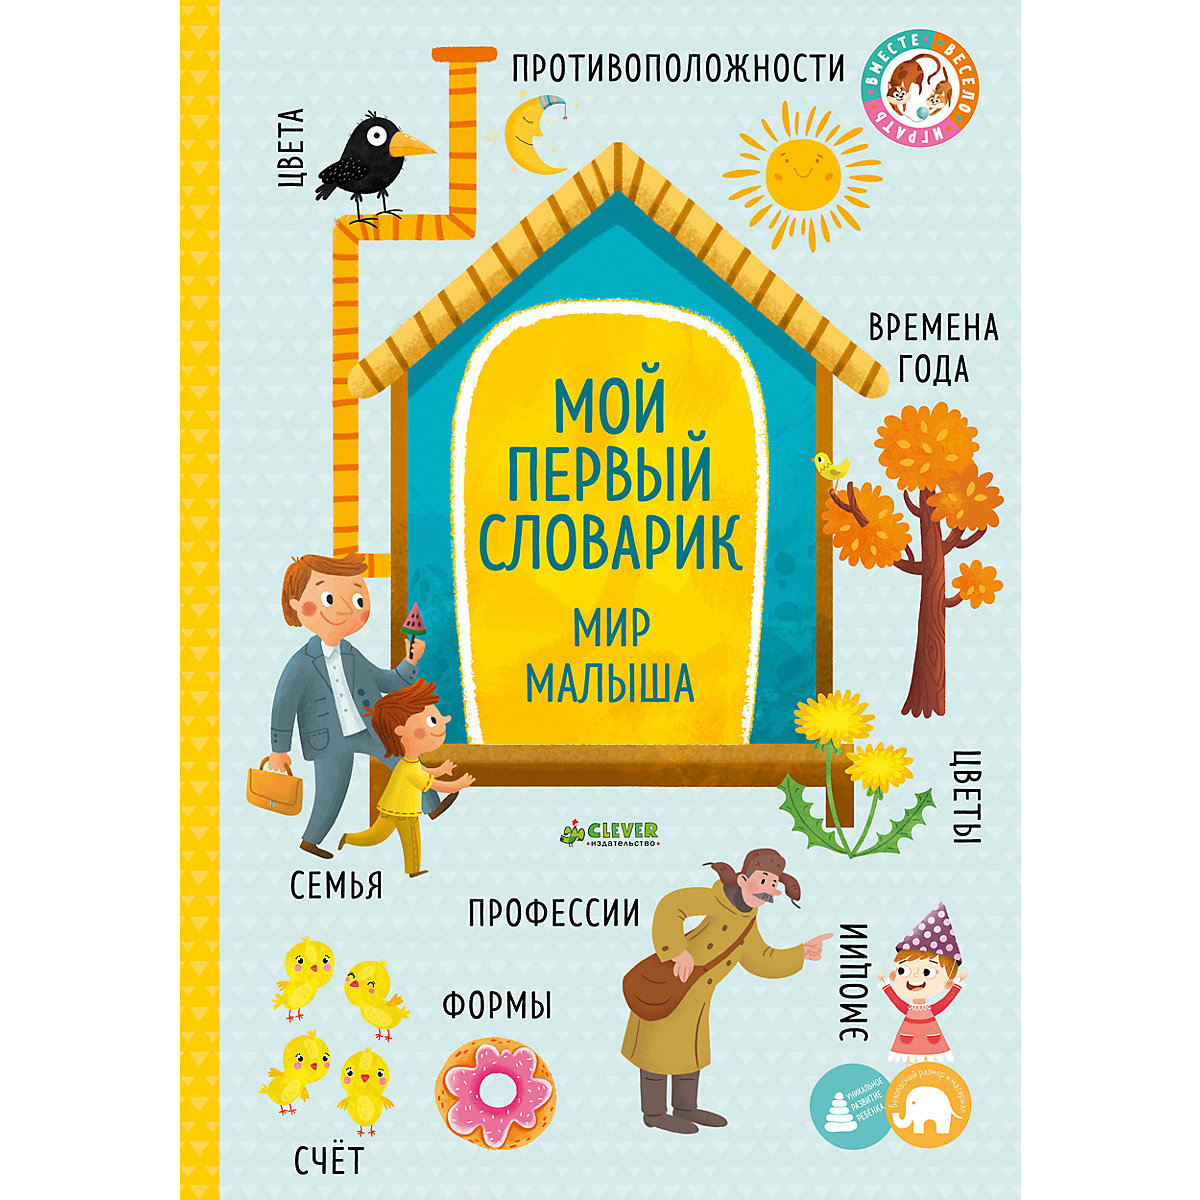 Books CLEVER 7940280 Children Education Encyclopedia Alphabet Dictionary Book For Baby MTpromo